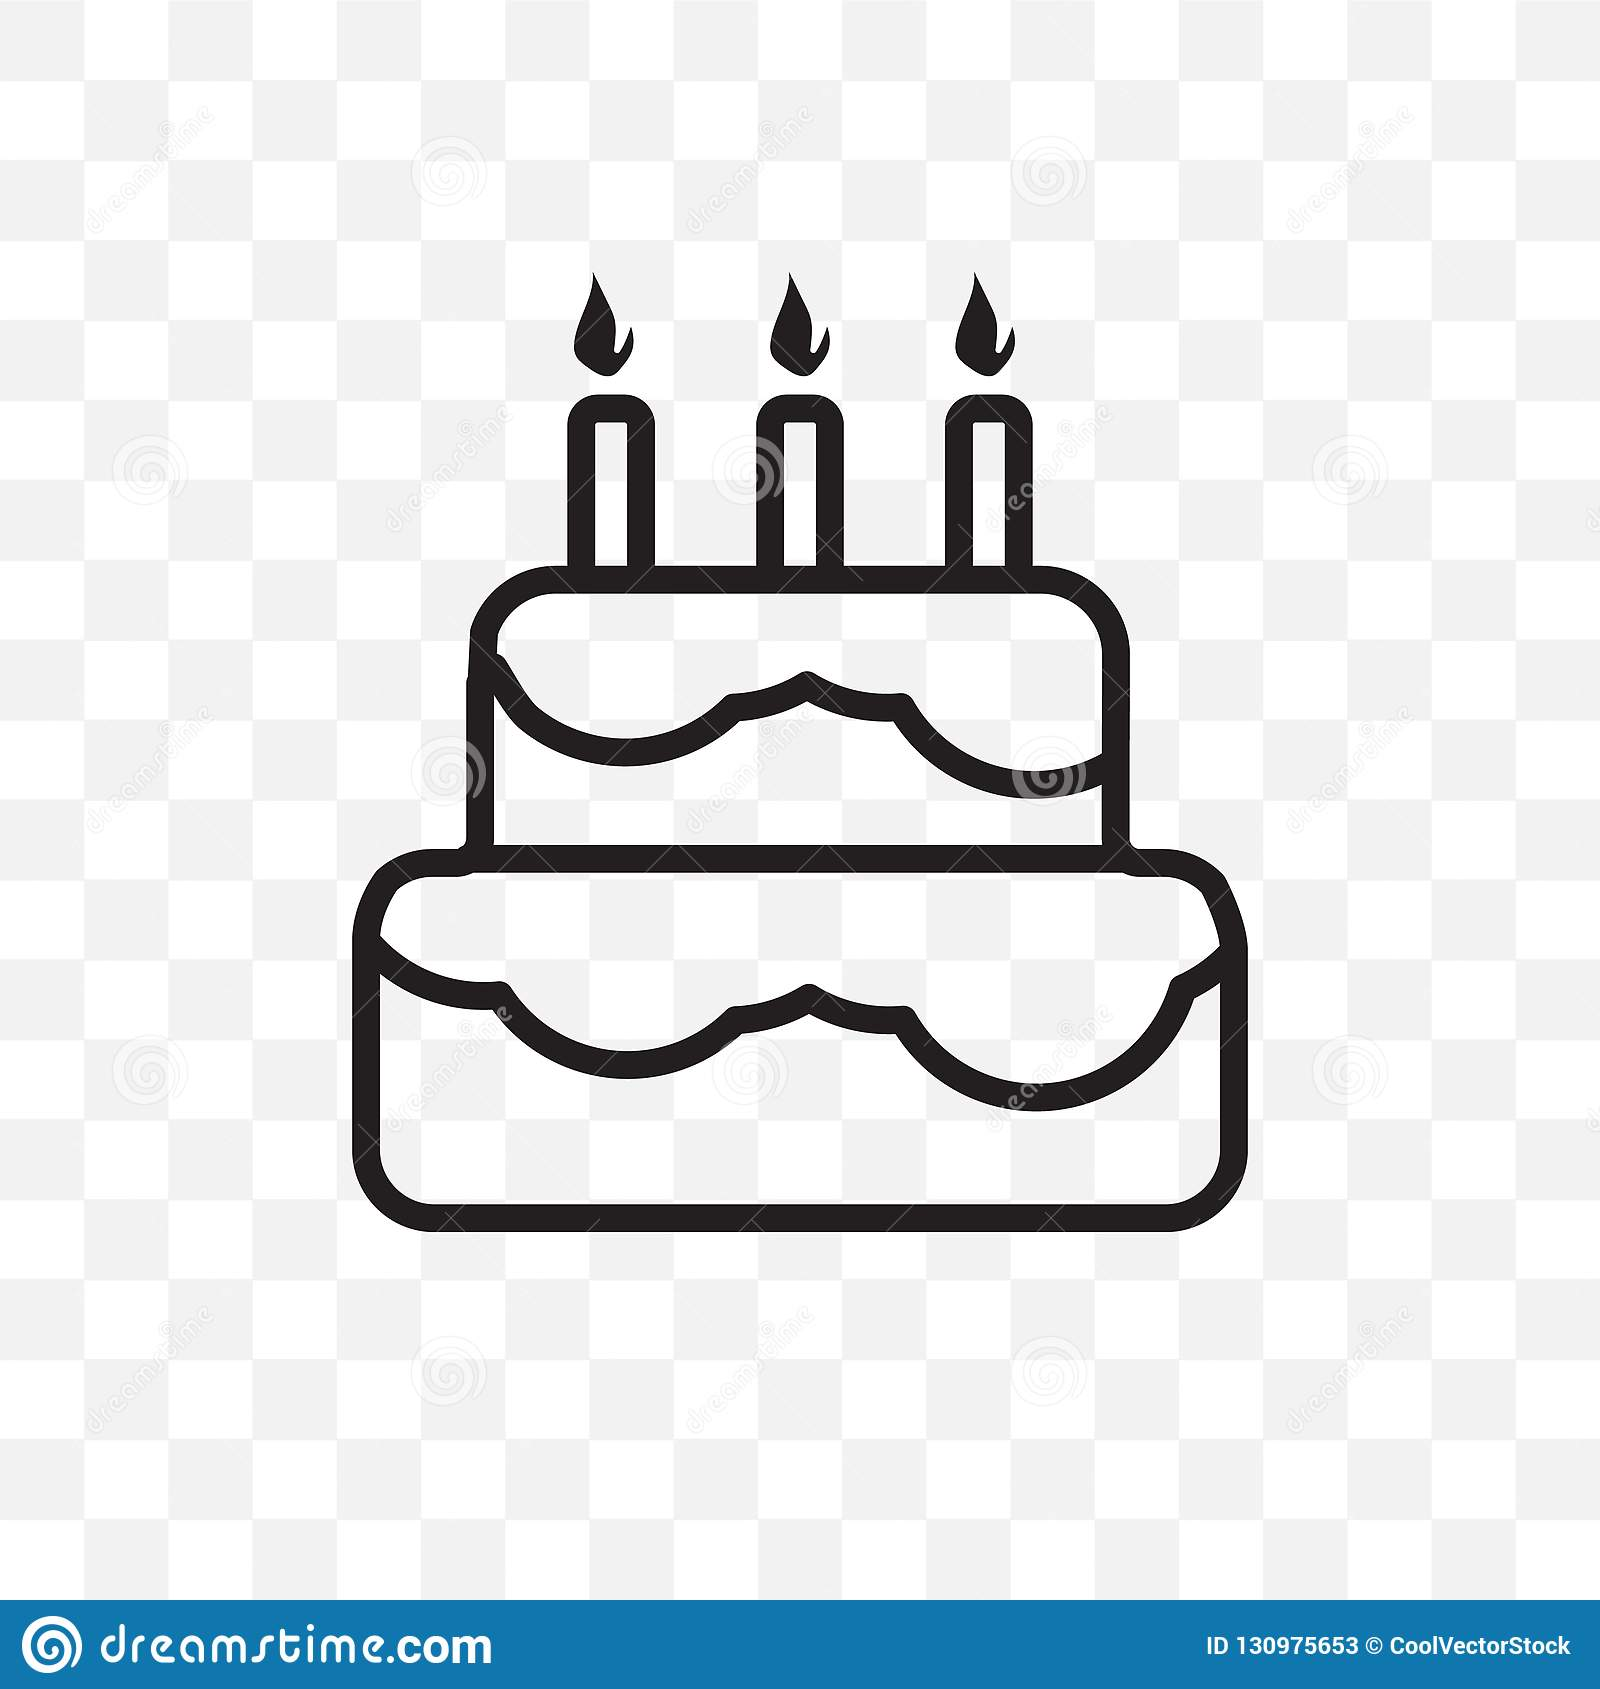 Birthday Cake Vector Linear Icon Isolated On Transparent Background